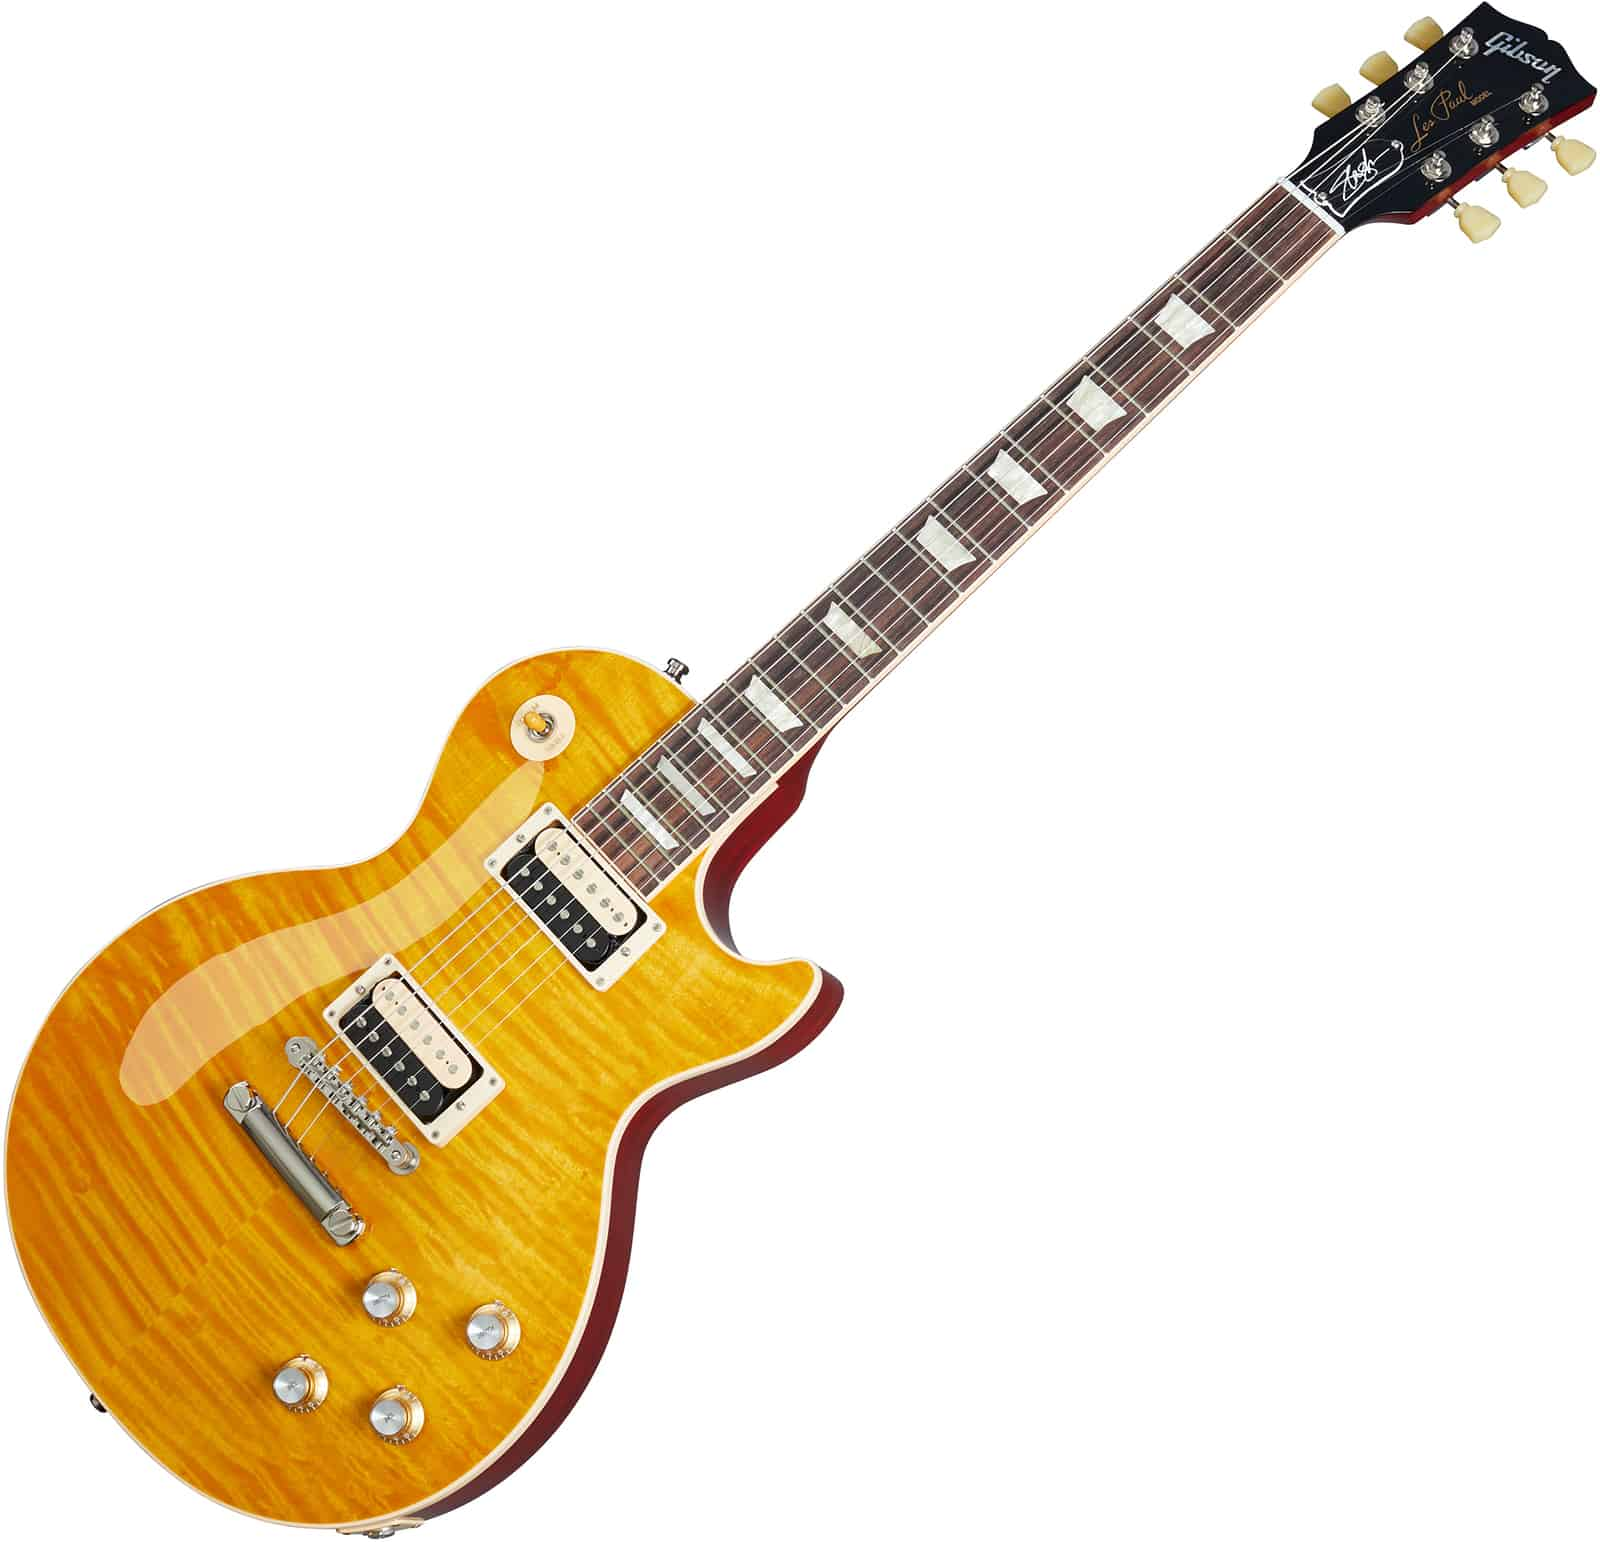 Gibson Les Paul Slash Standard